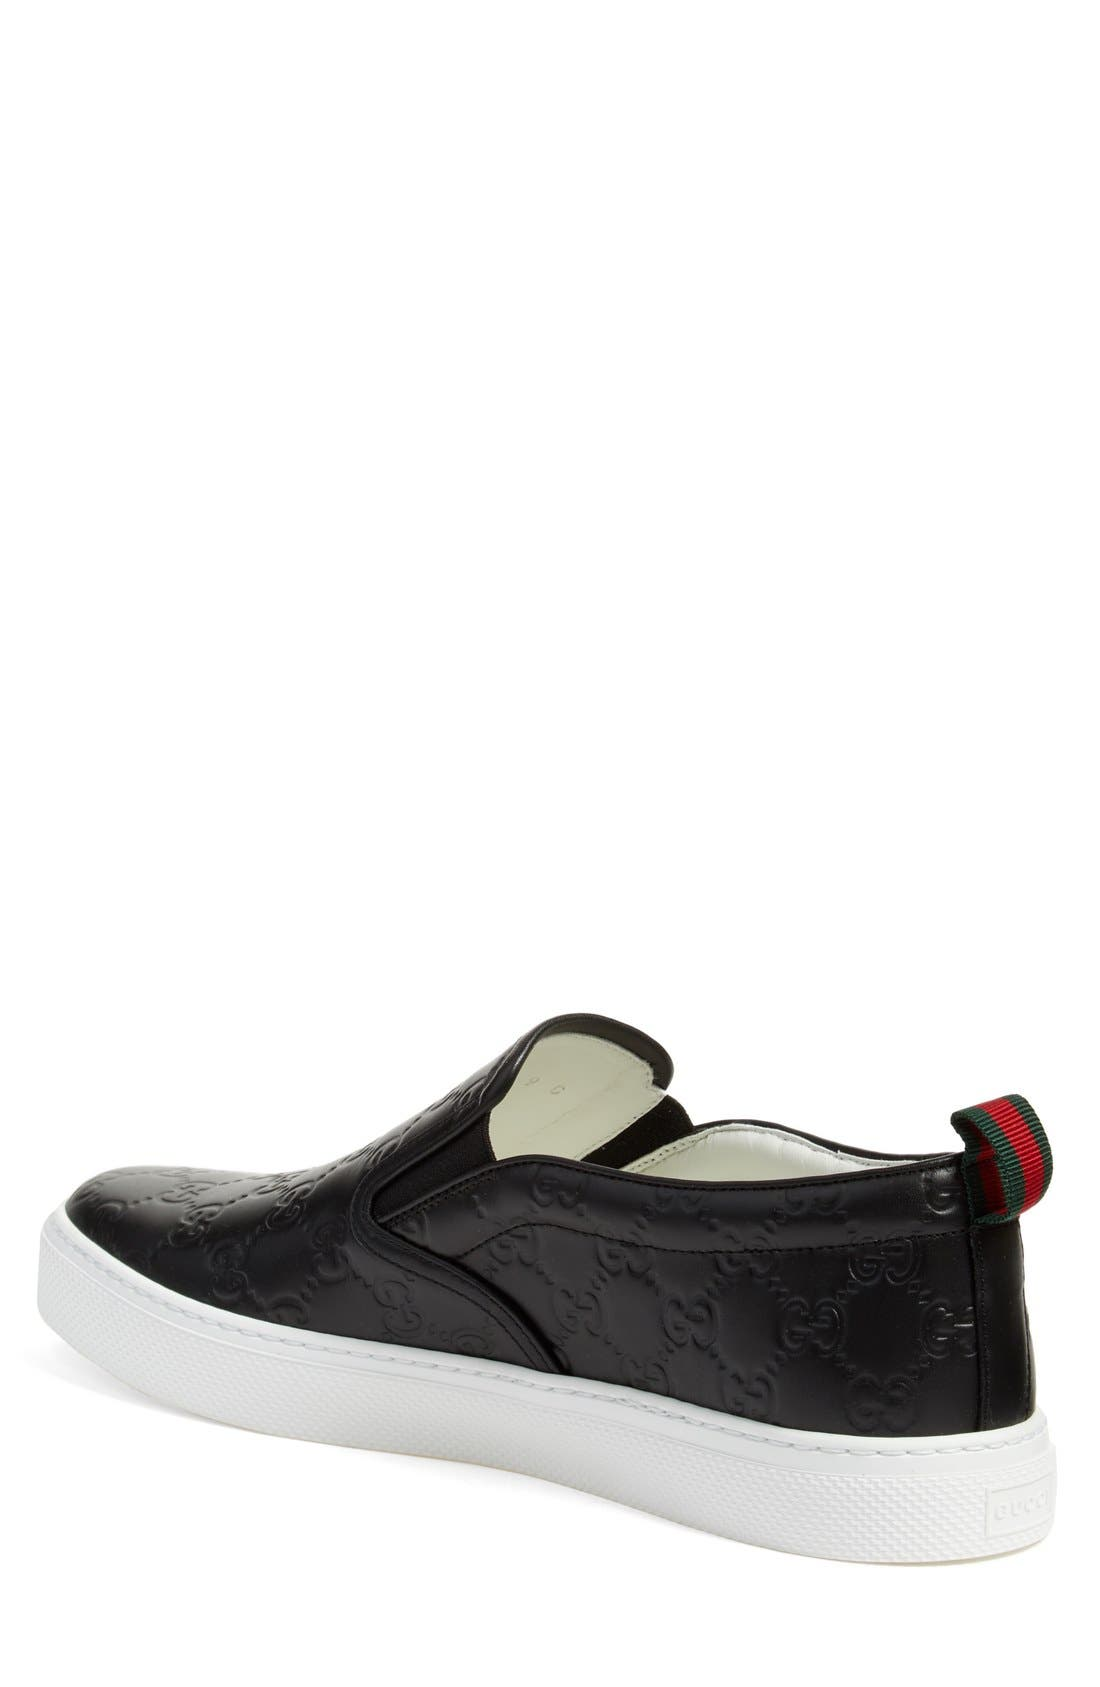 GUCCI, Dublin Slip-On Sneaker, Alternate thumbnail 2, color, NERO EMBOSSED LEATHER